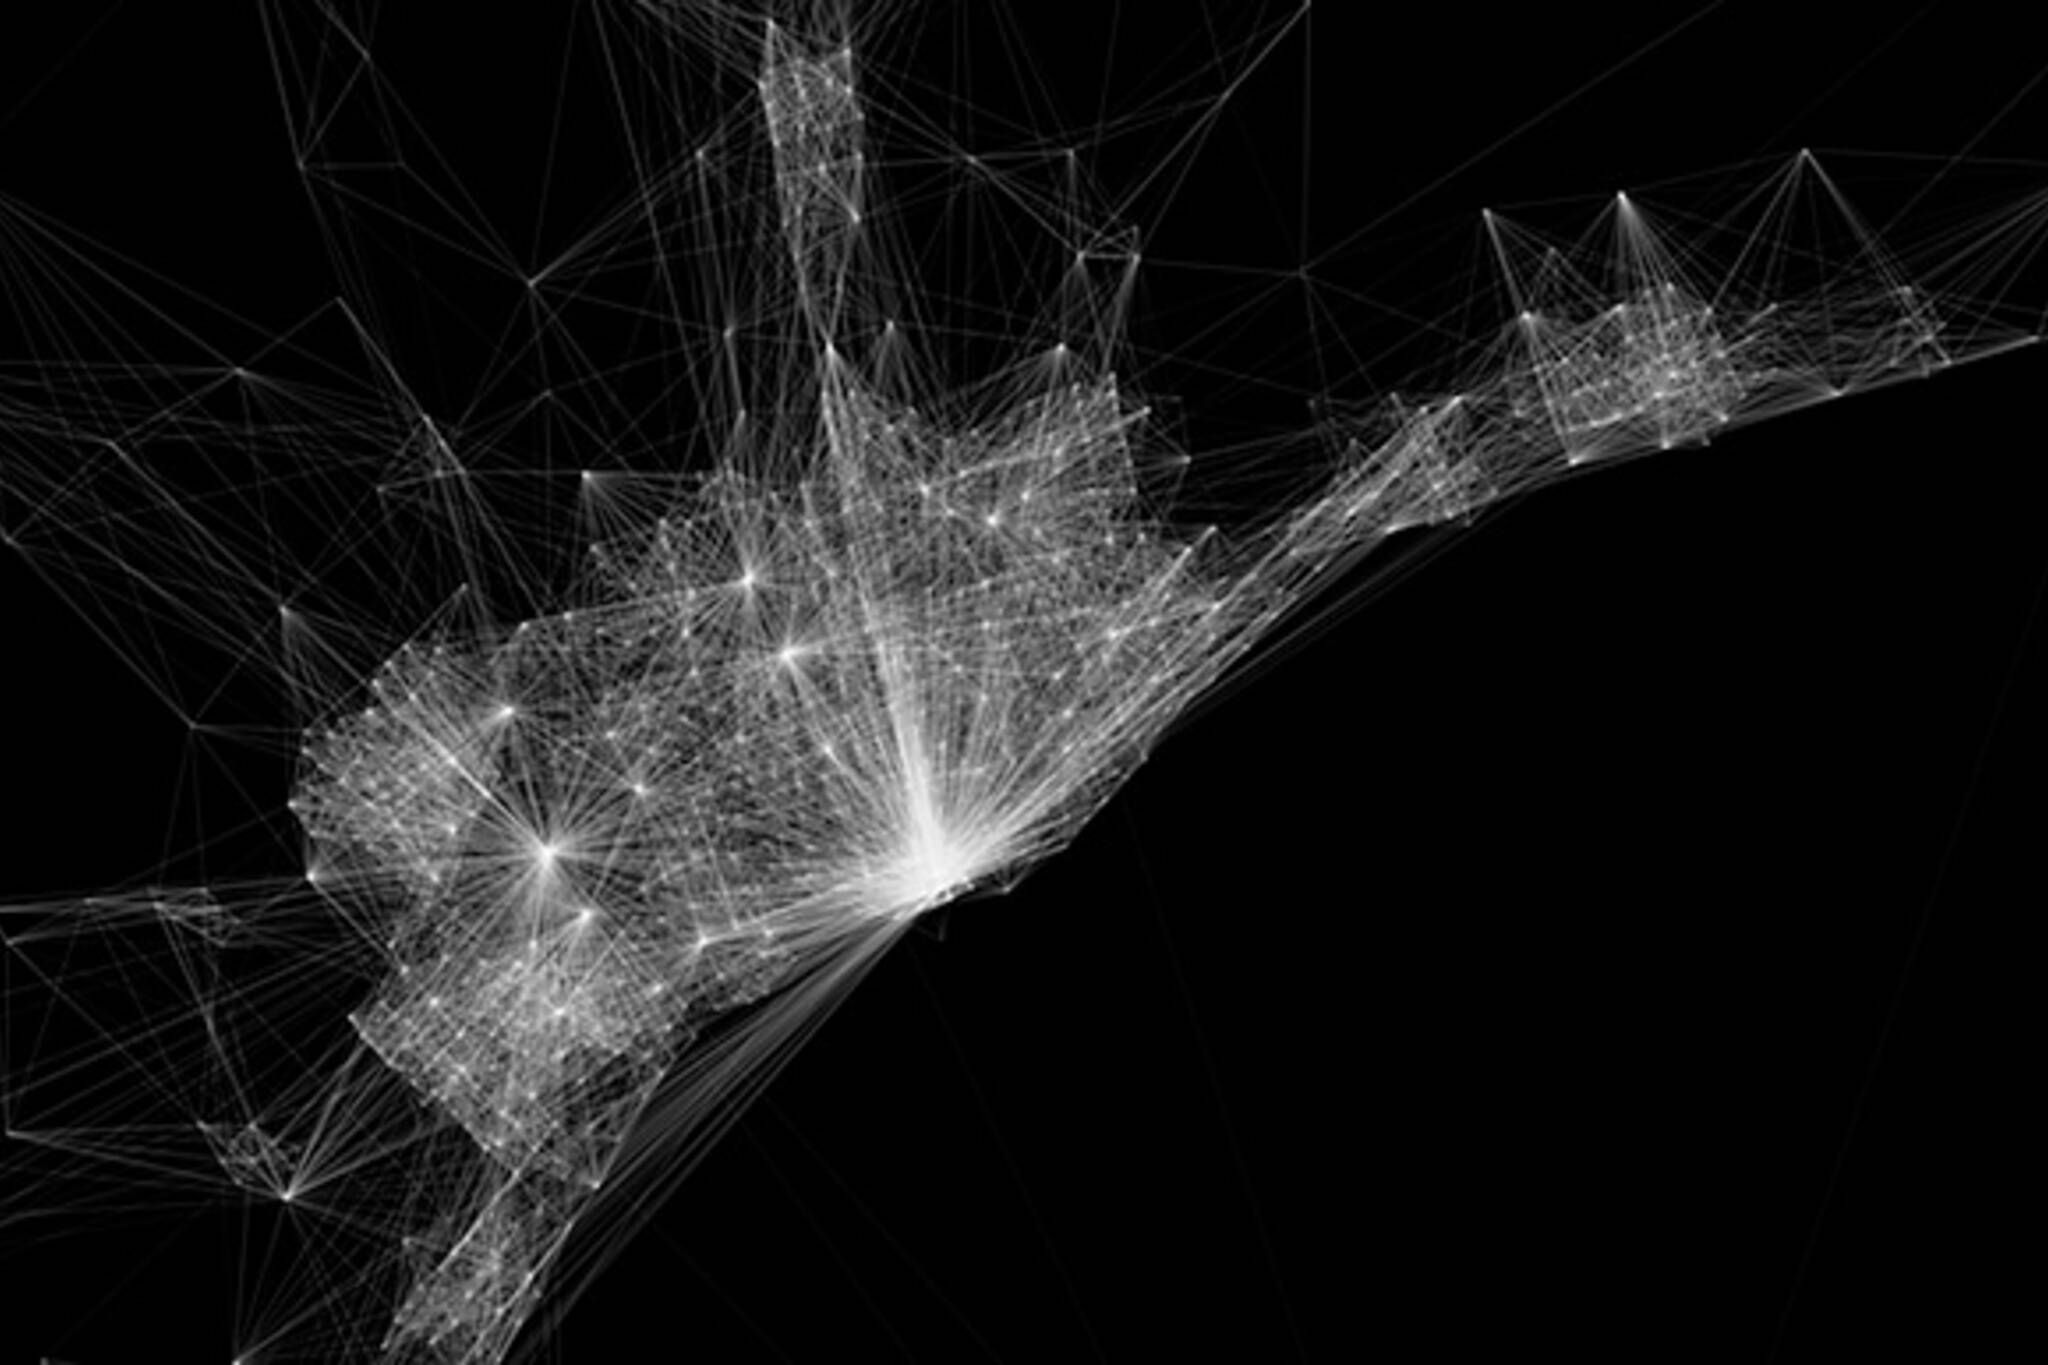 toronto travel patterns